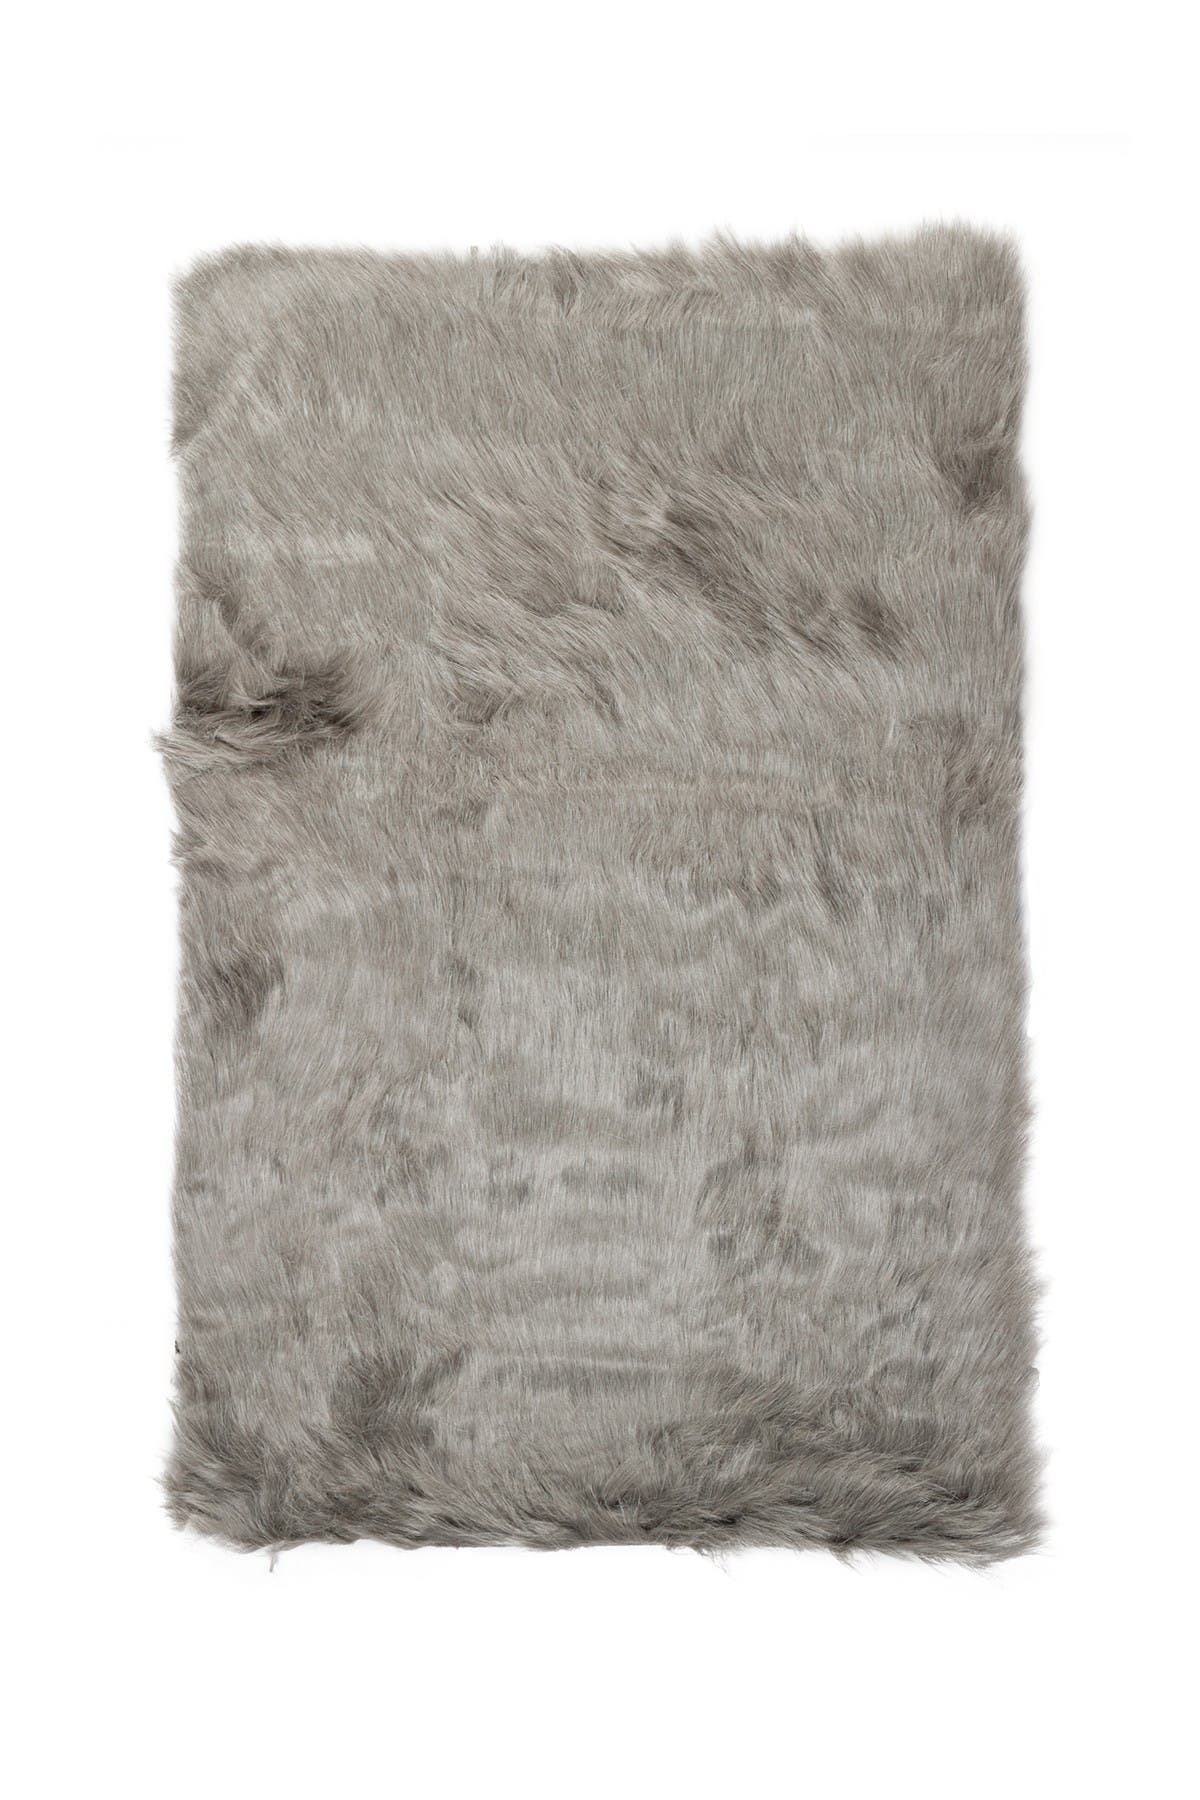 Image of LUXE Hudson Faux Sheepskin Rug/Throw - Gray